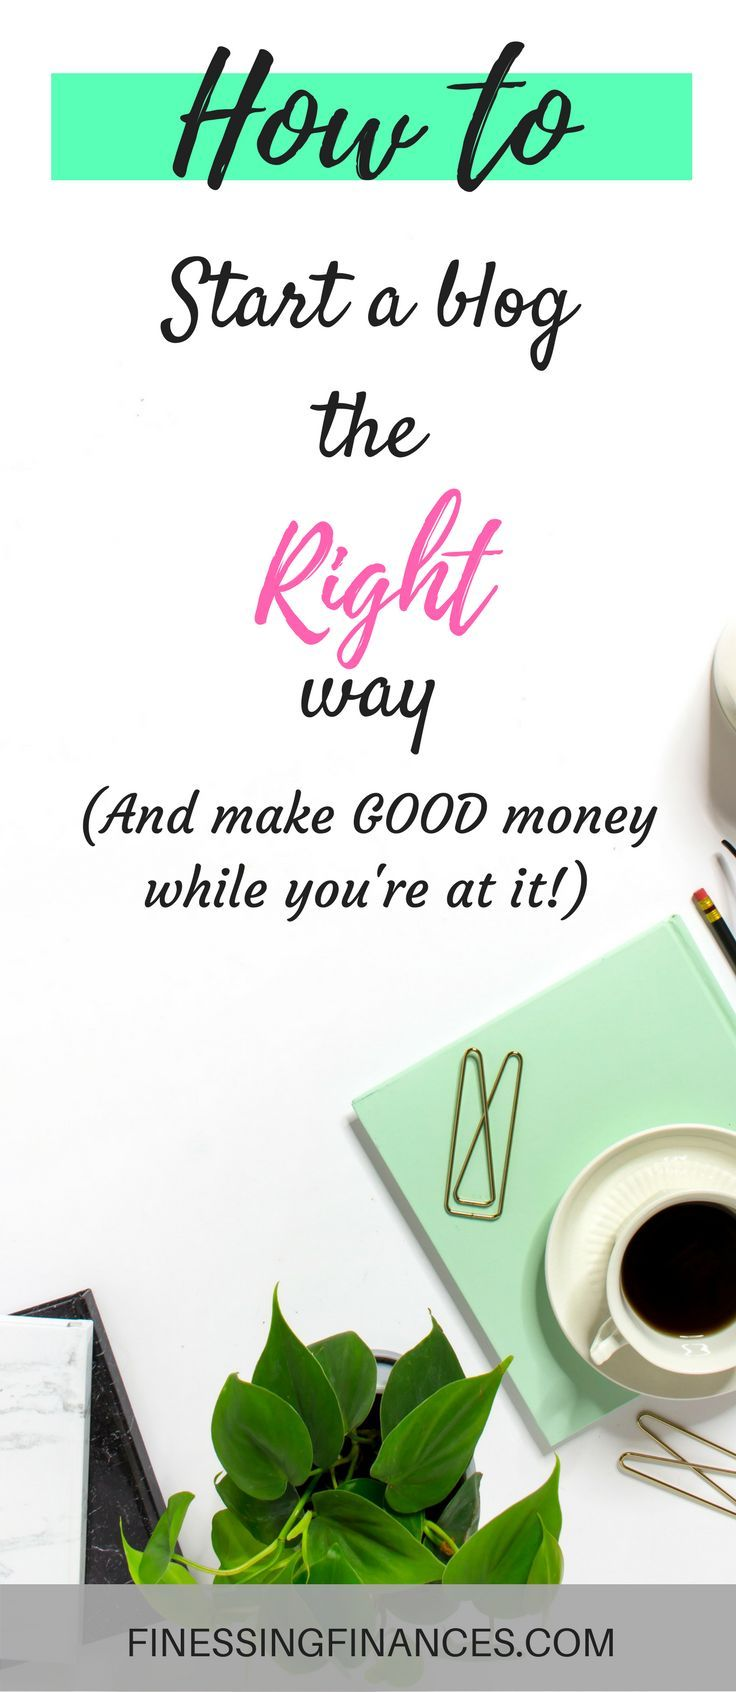 A step-by-step guide to starting a profitable blog that doesn't require you to be a tech wiz! #blogging #makemoneyonline #siteground #hosting #niche #bossbabe